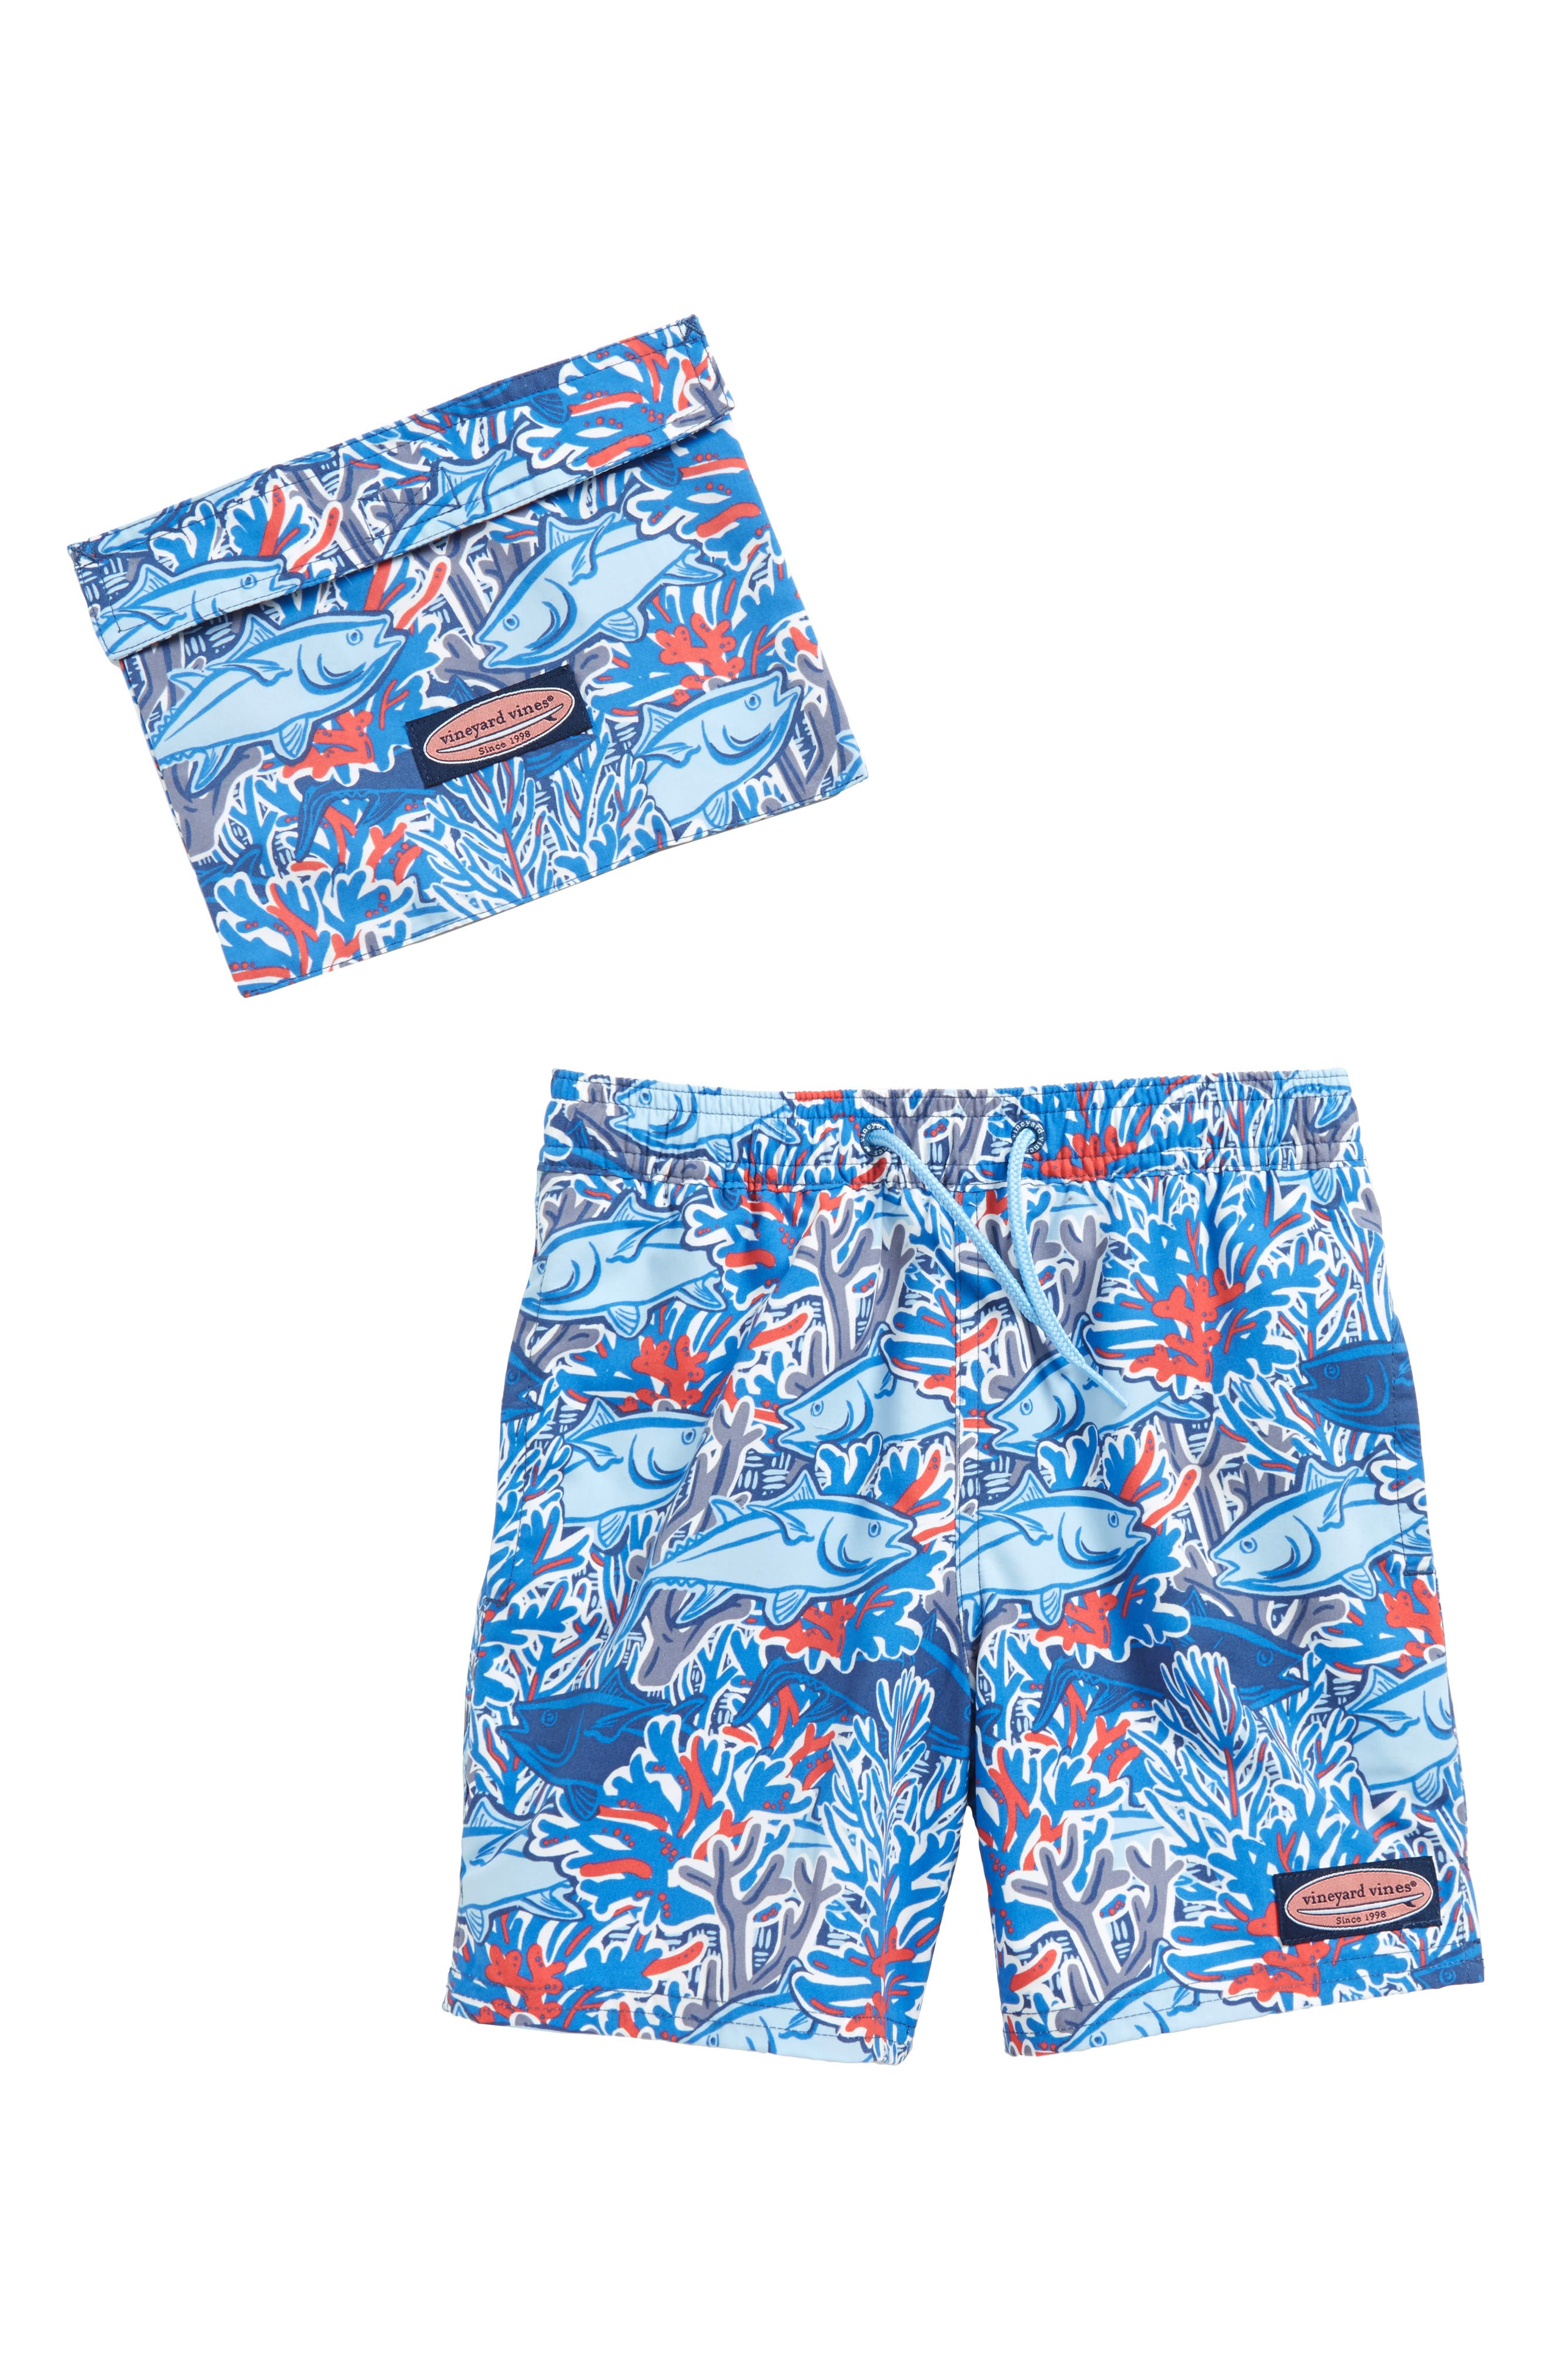 Main Image - vineyard vines Chappy Tuna in Coral Swim Trunks (Toddler Boys & Little Boys)